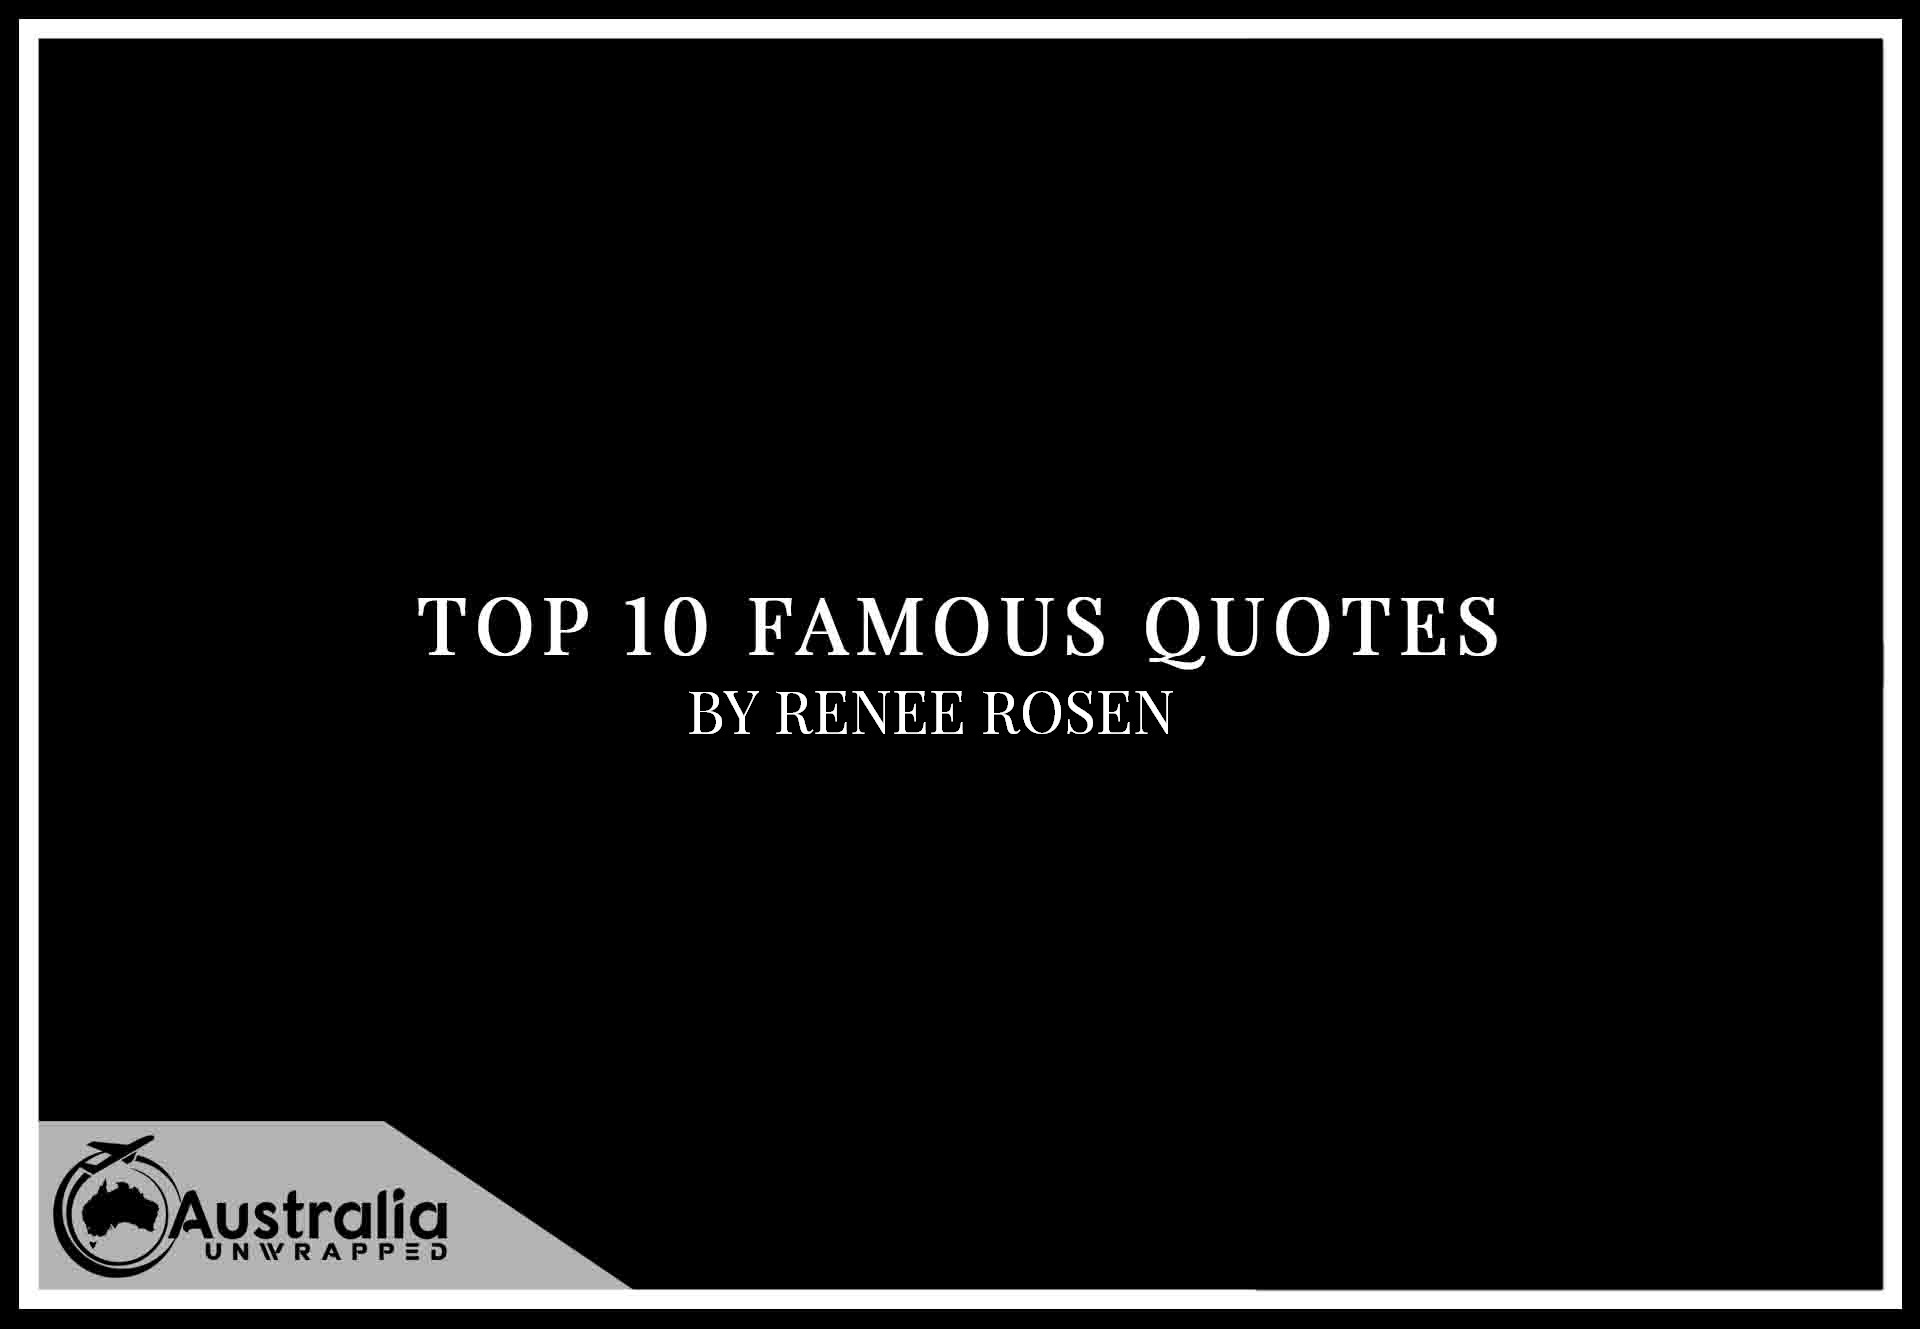 Top 10 Famous Quotes by Author Renee Rosen